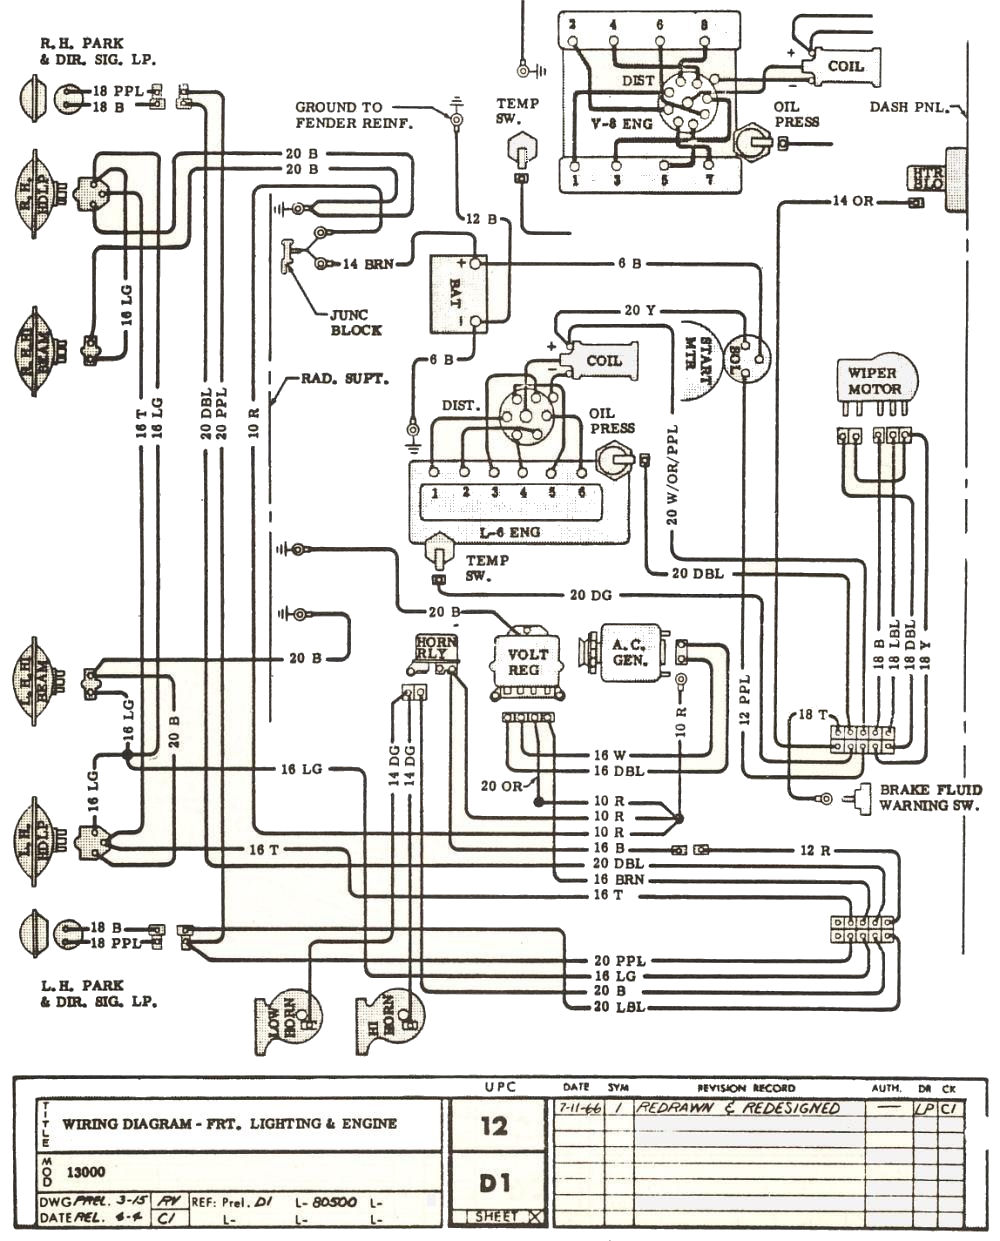 [WRG-2891] 67 Chevelle Dash Wiring Diagram